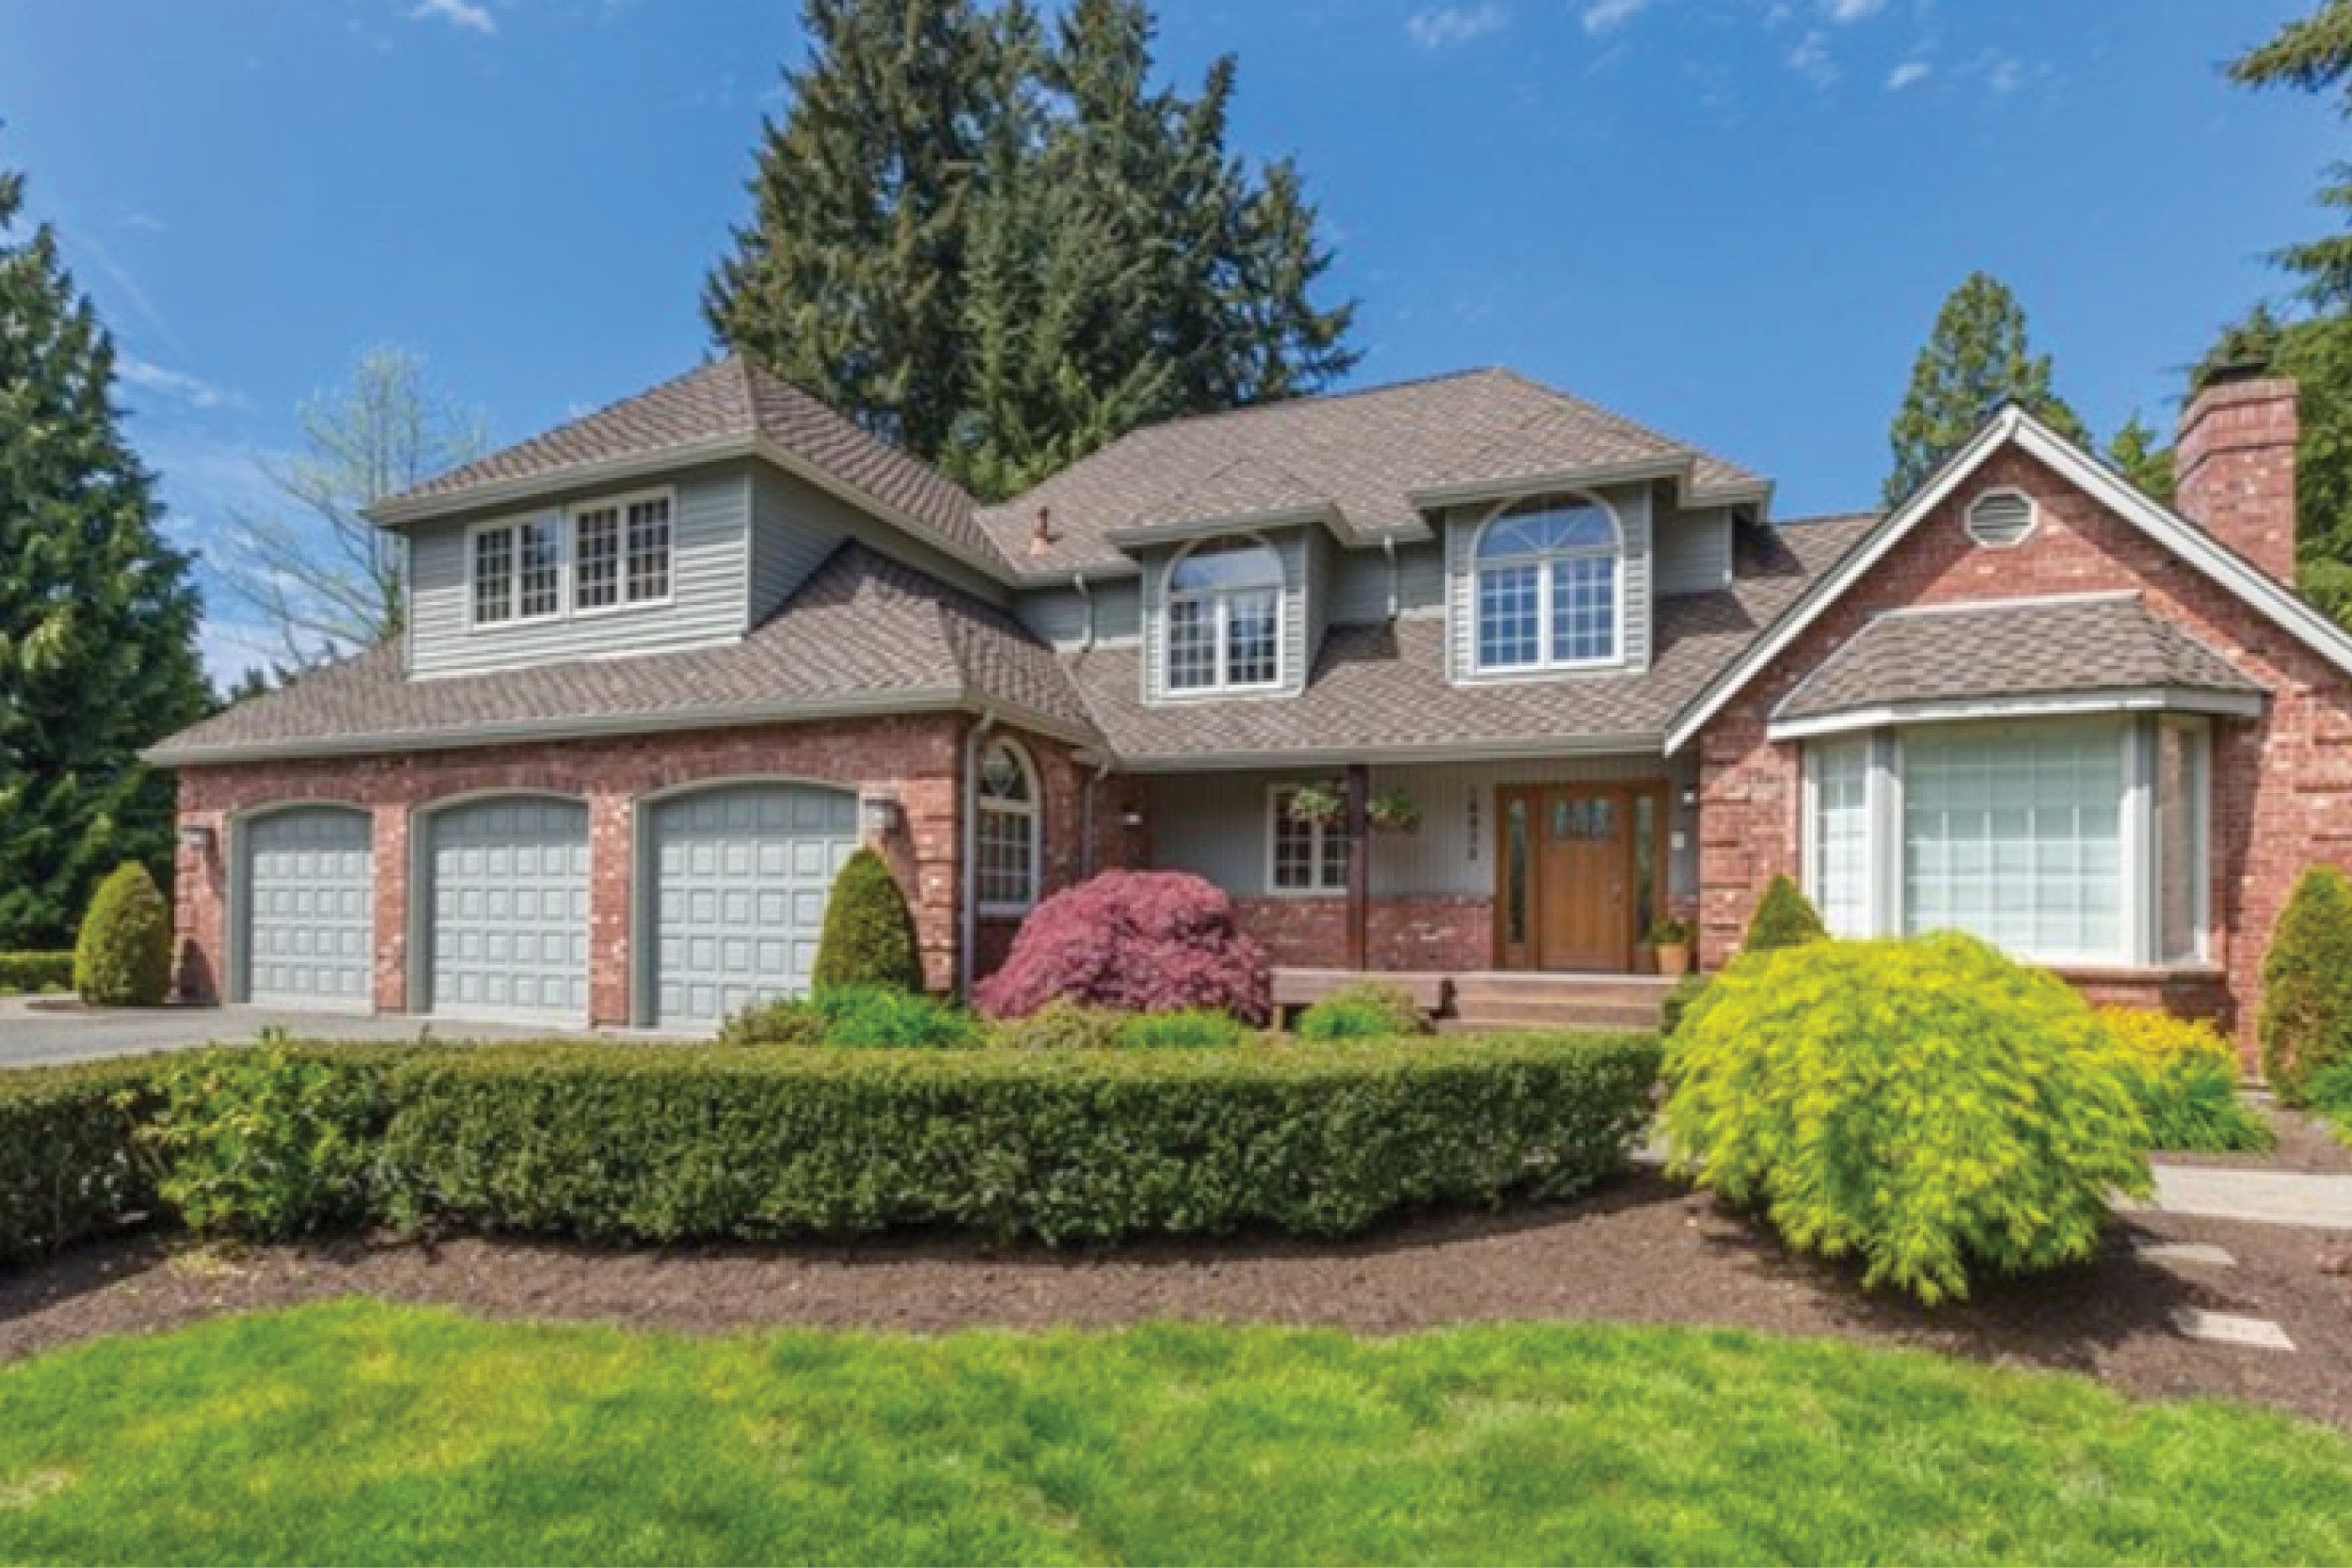 Woodinville    Sold for $1,250,000 June 2017